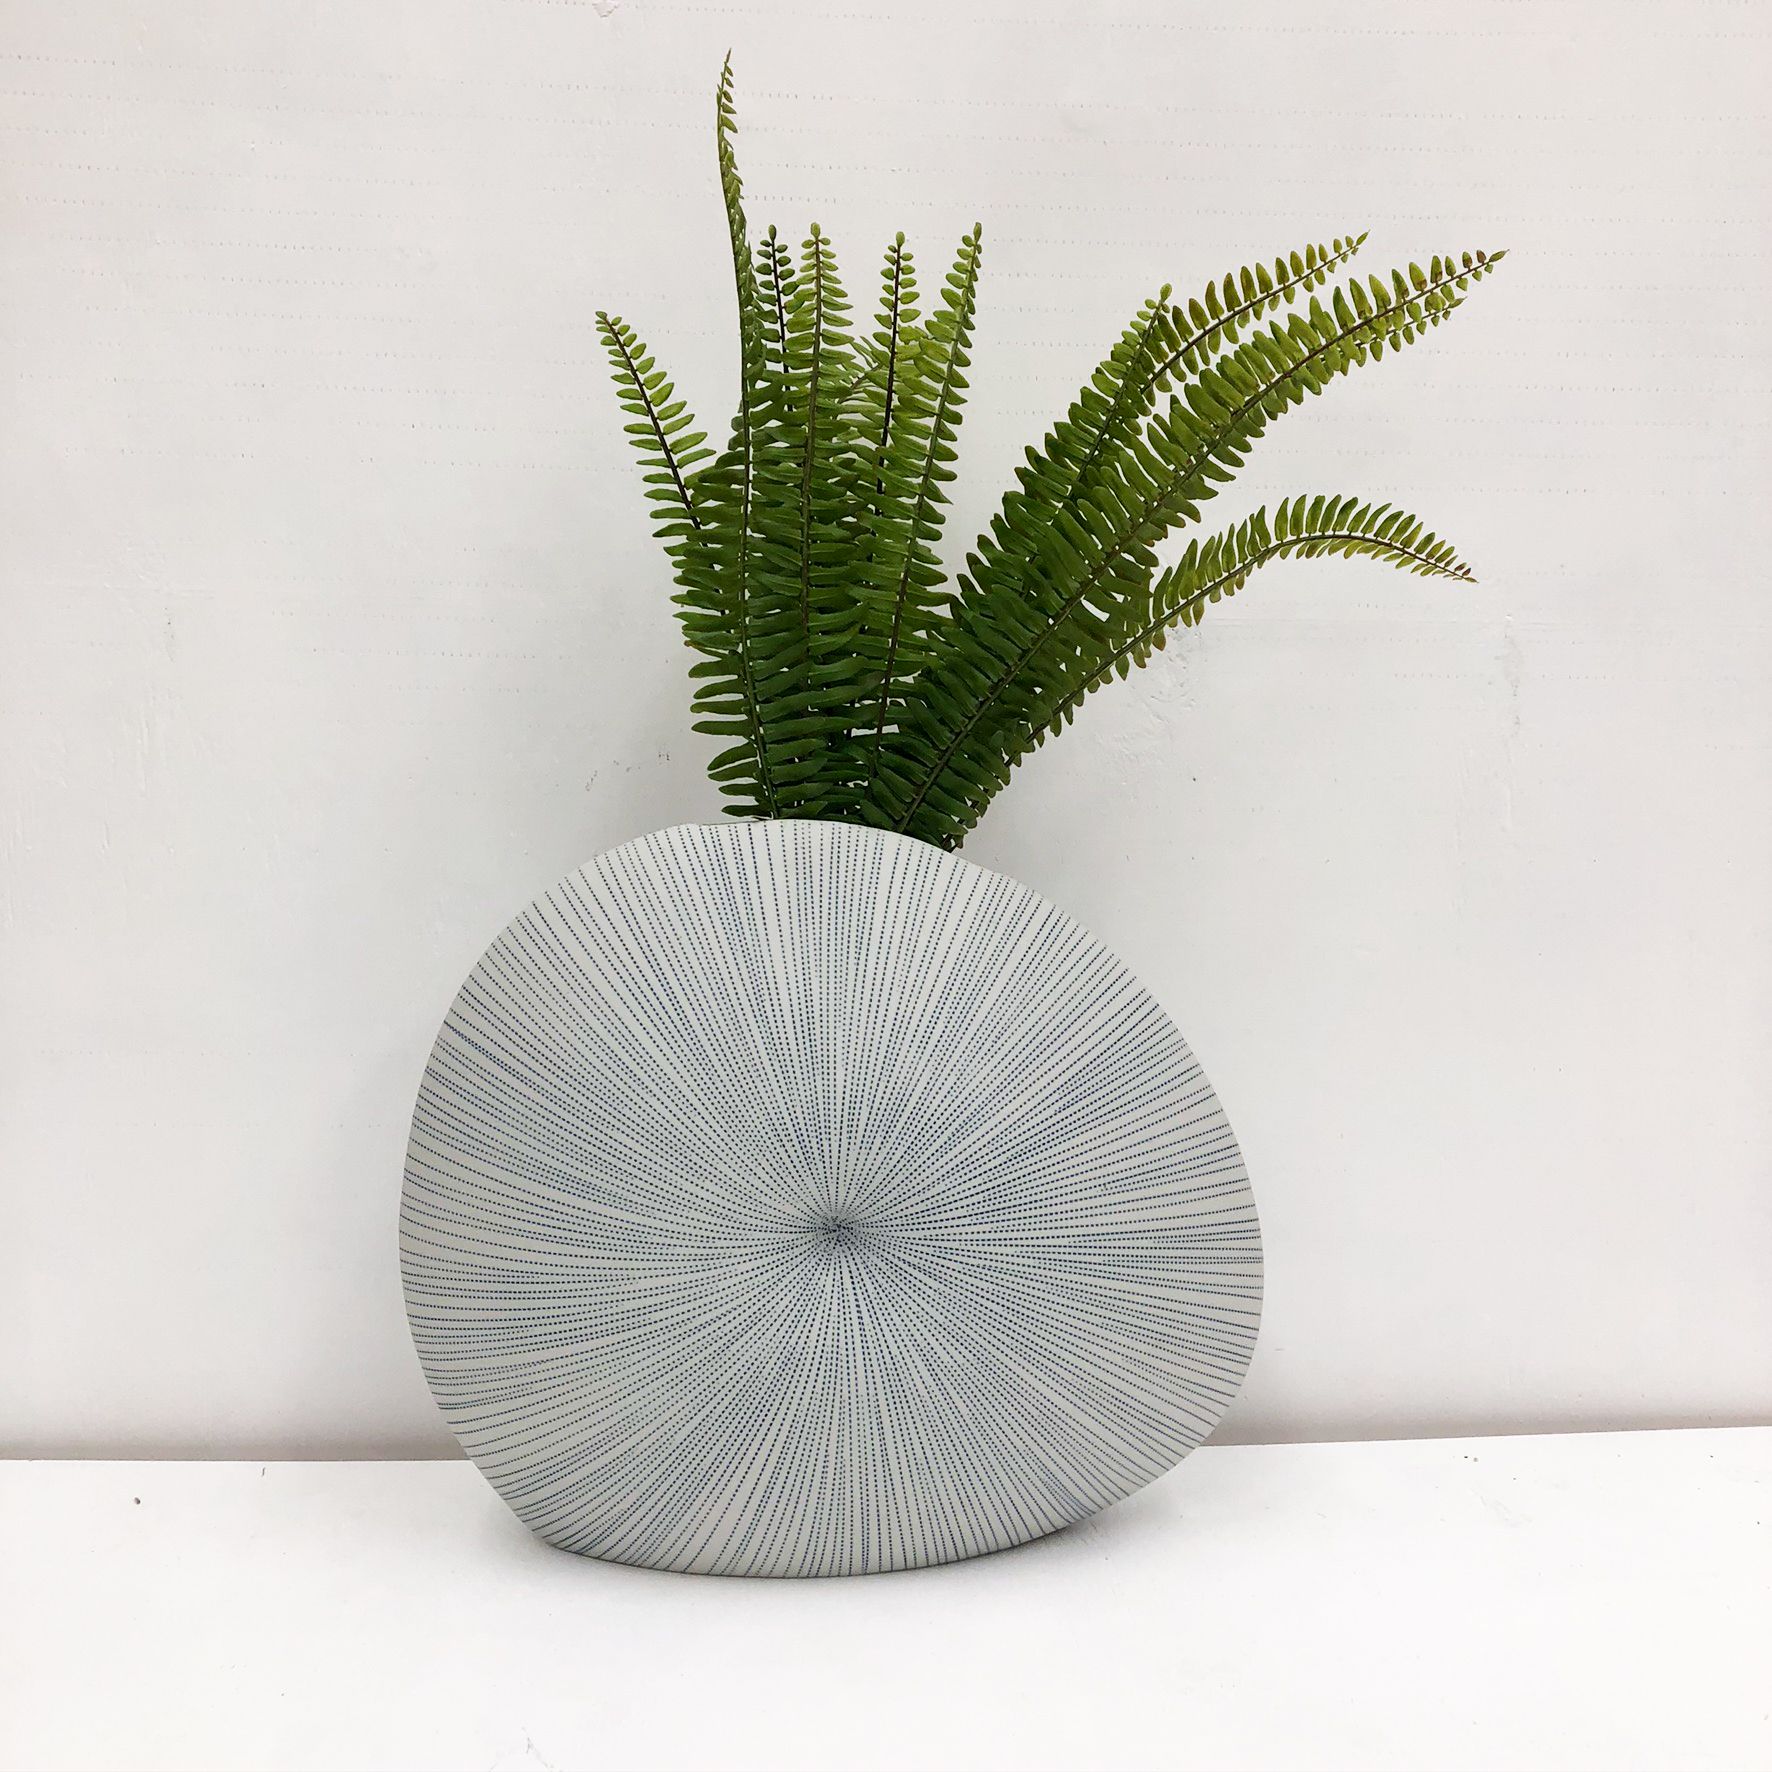 Diva Round S Handmade Vase - front view with plant